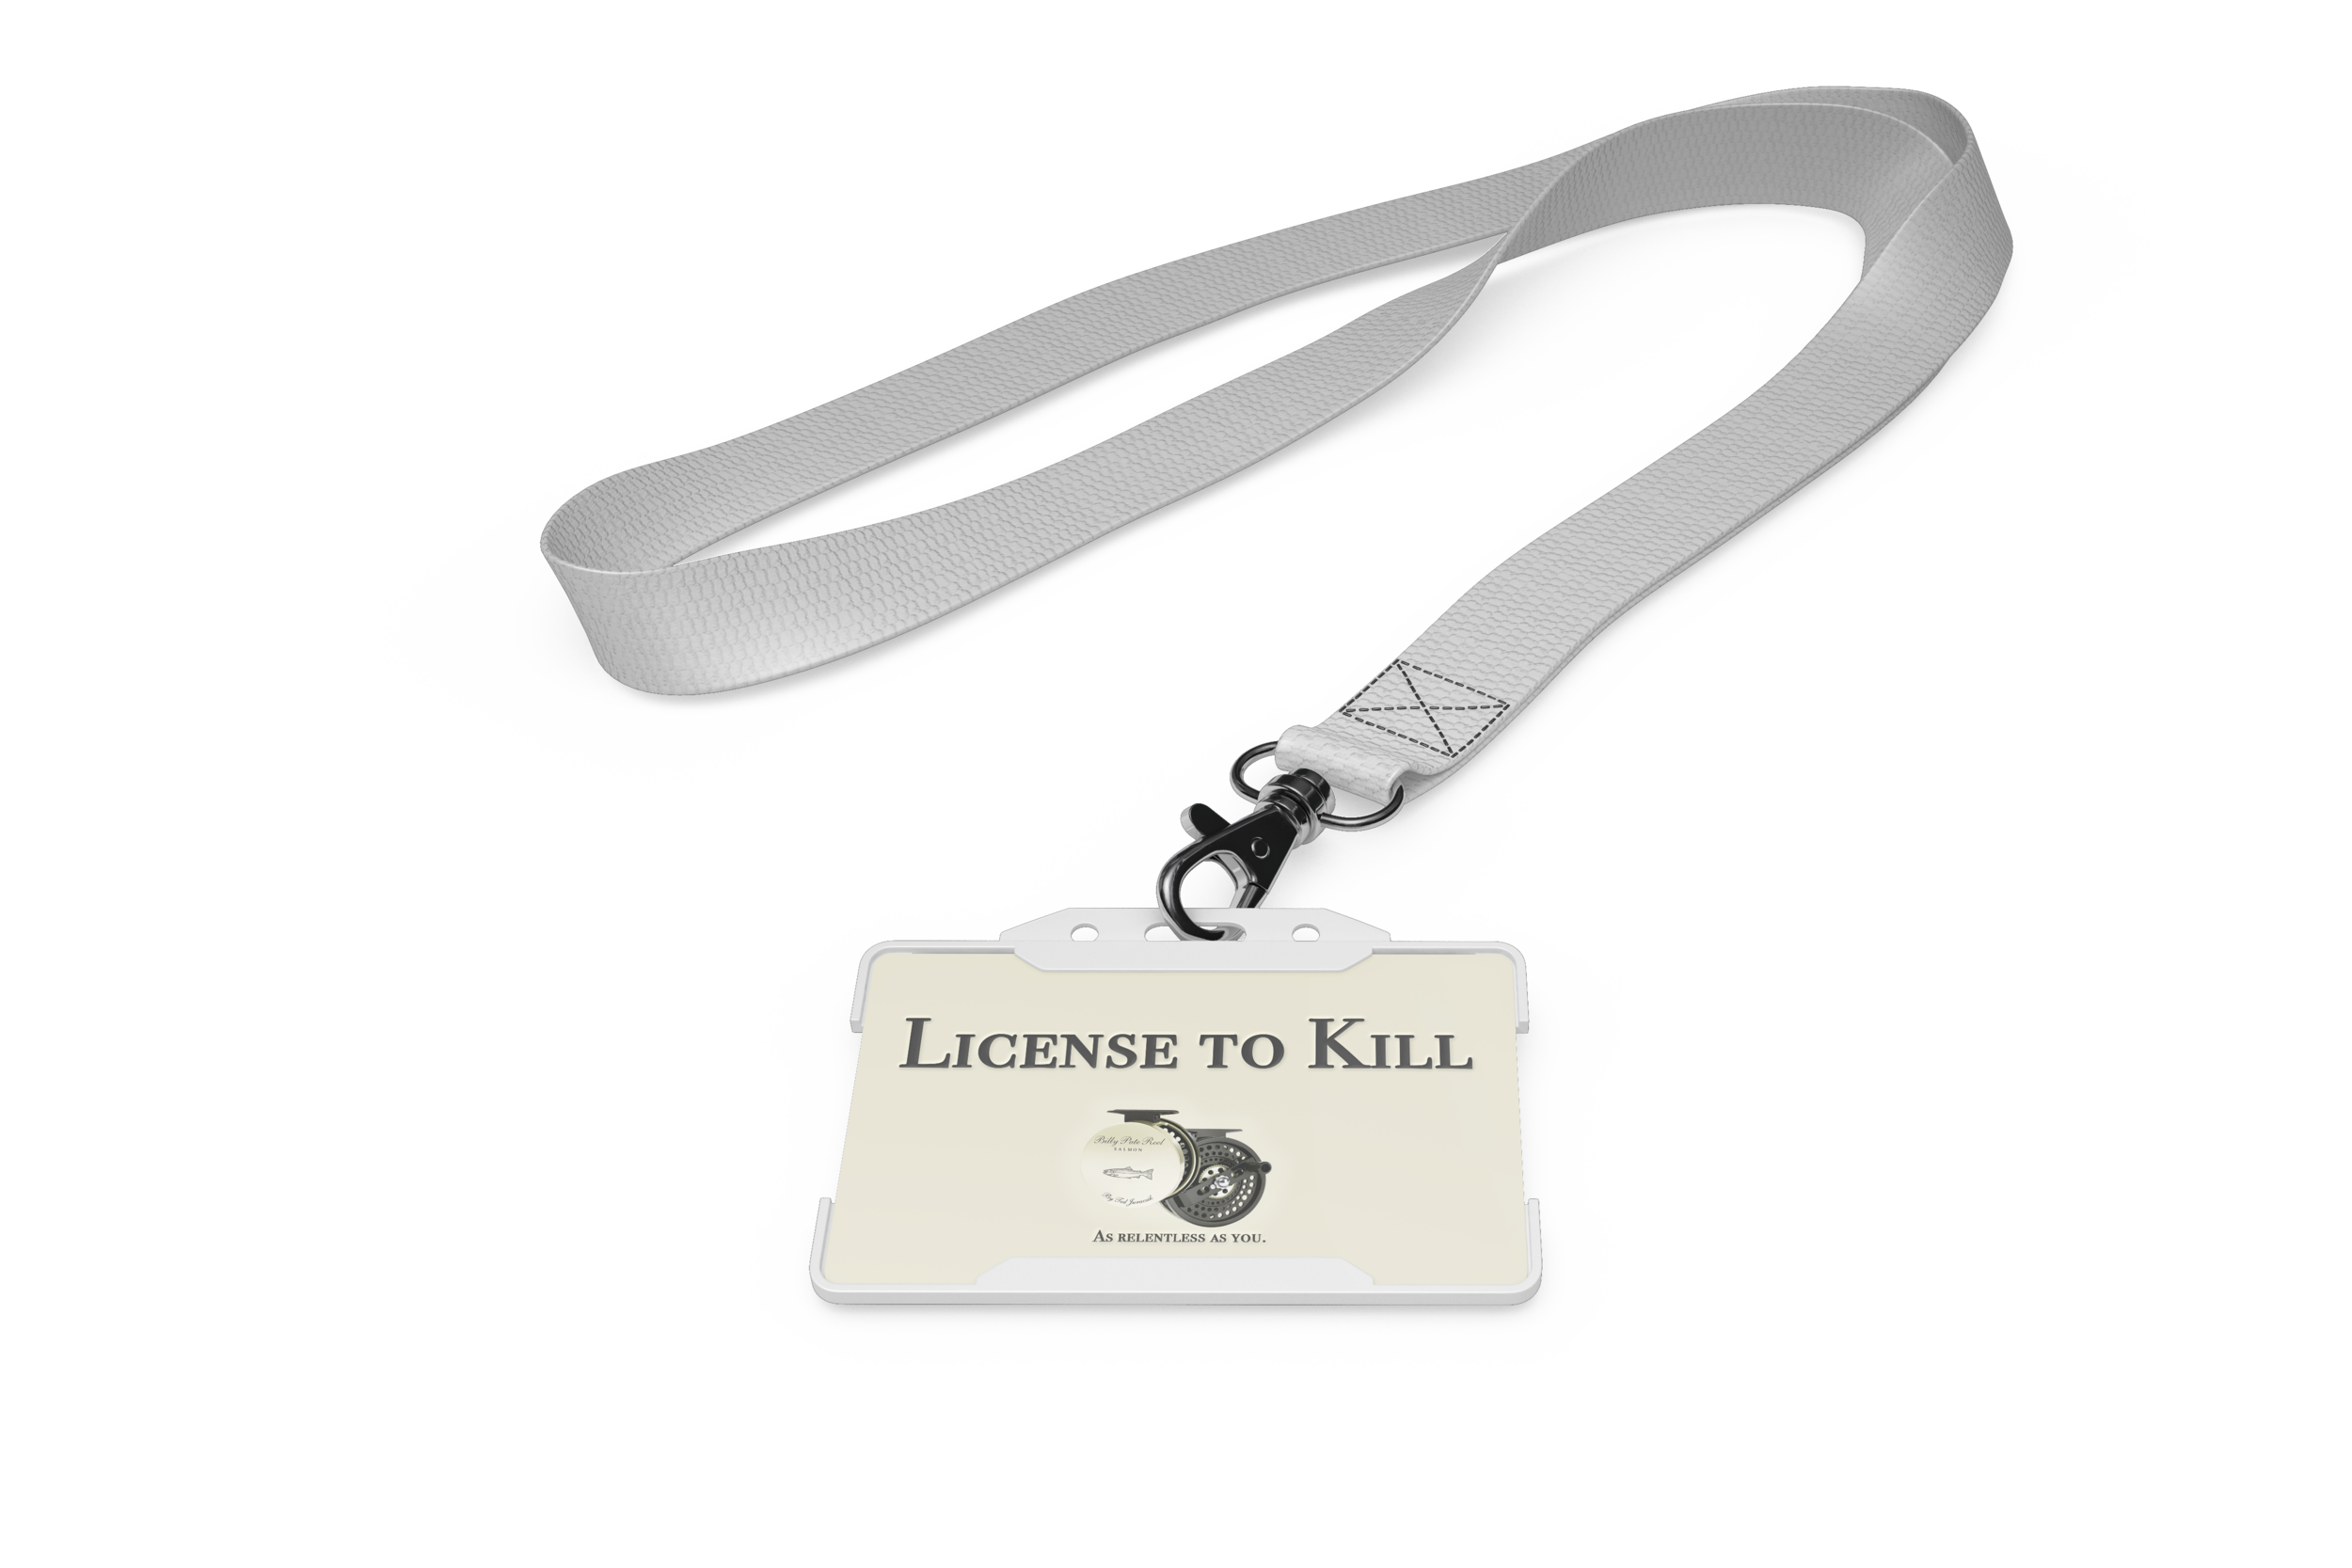 Fishing license lanyards give customers a license to kill